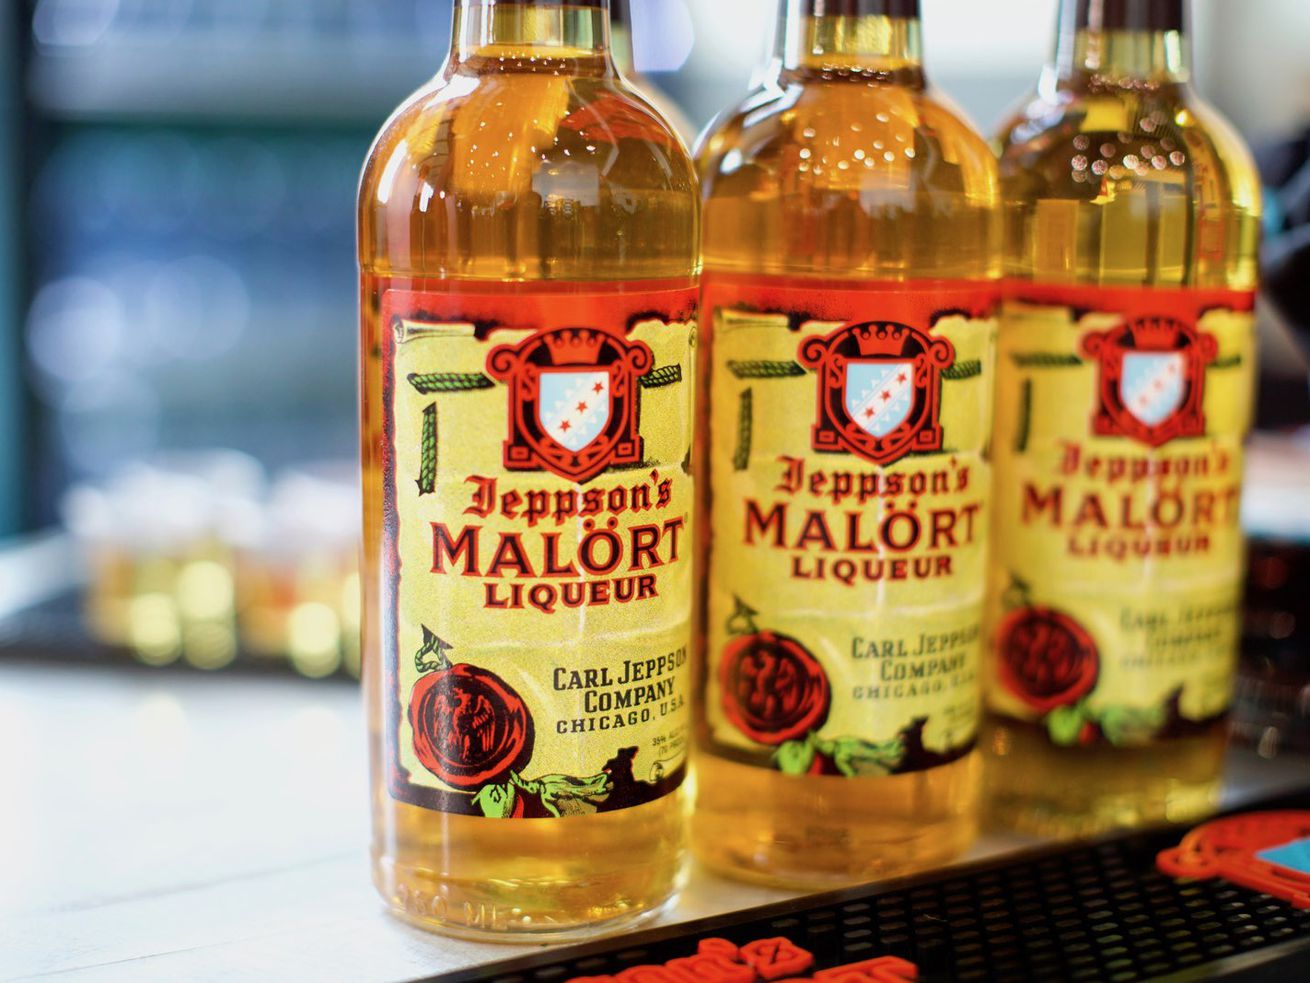 A Milwaukee bar is throwing a malort fest.